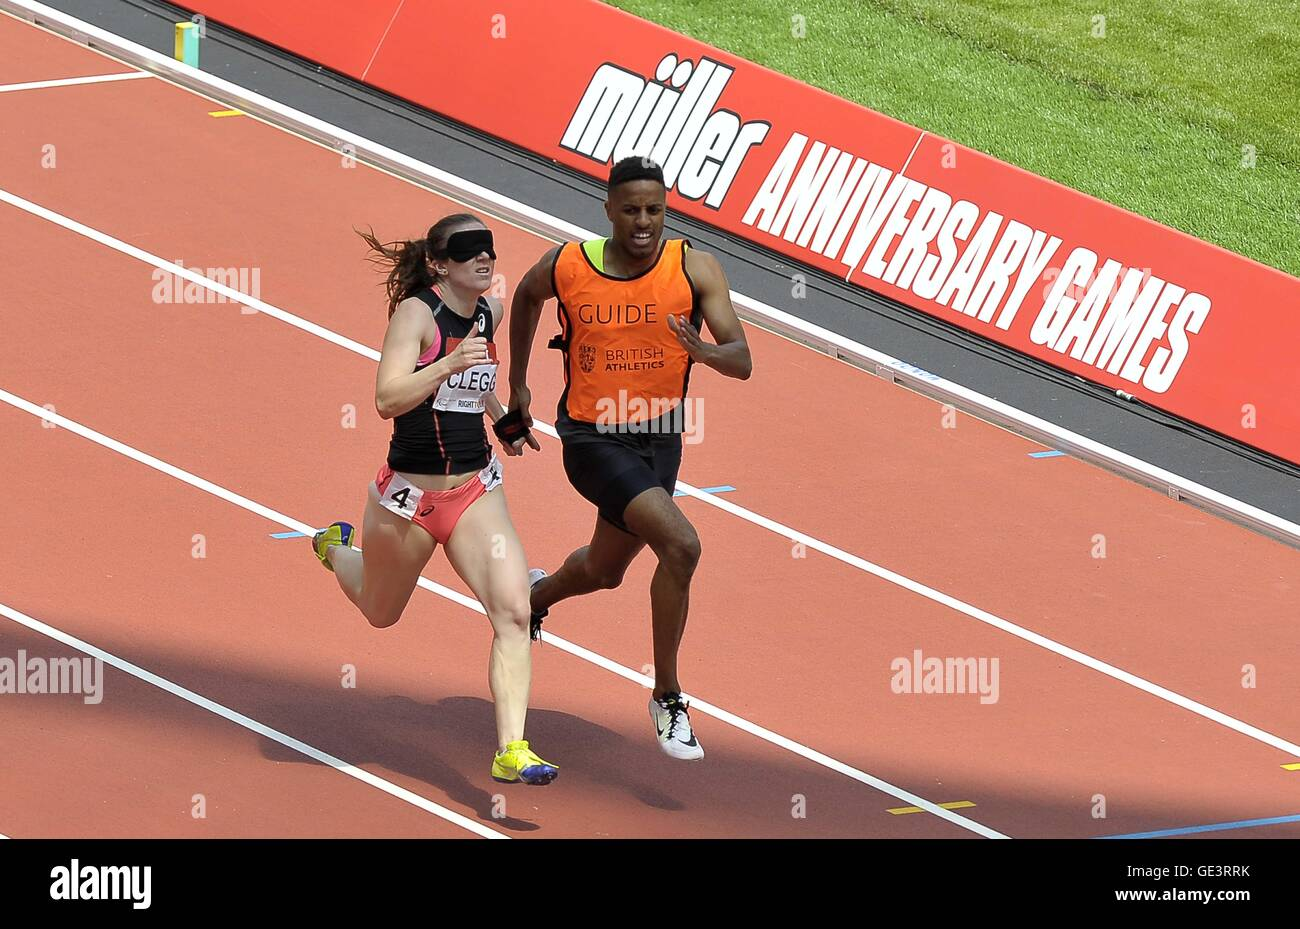 London, UK. 23rd July, 2016. Libby Clegg (GBR) and her guide Ryan Asquith in the womens 200m T11/12. Anniversary Stock Photo